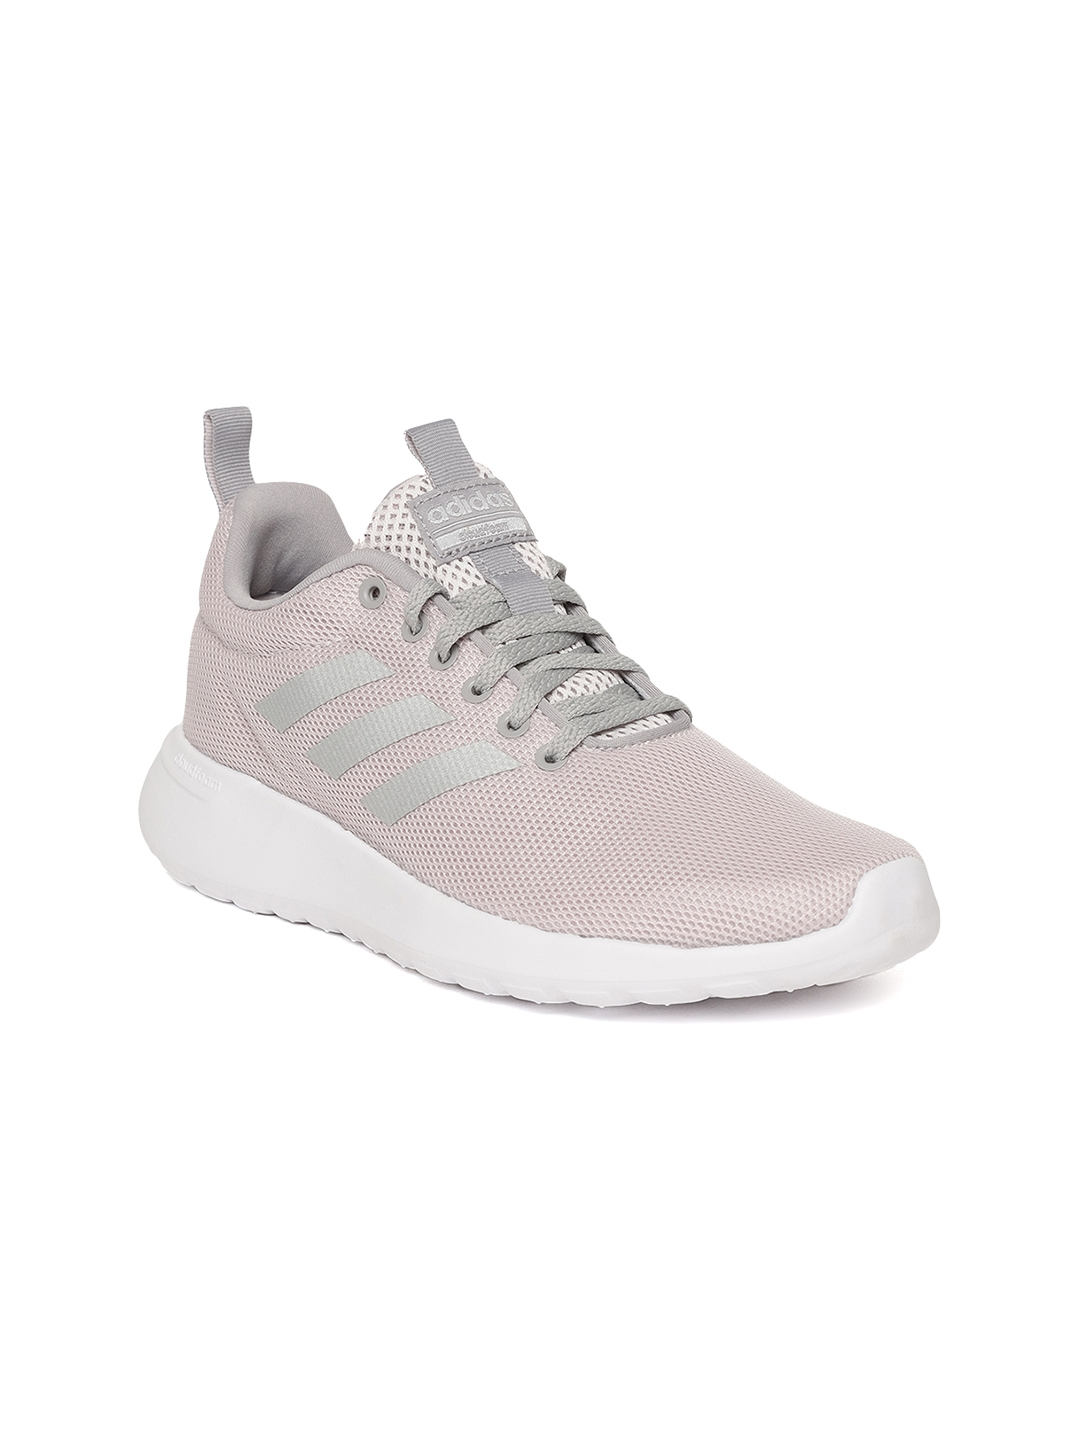 3e2a2f2aa Buy ADIDAS Women Pink Lite Racer CLN Running Shoes - Sports Shoes ...